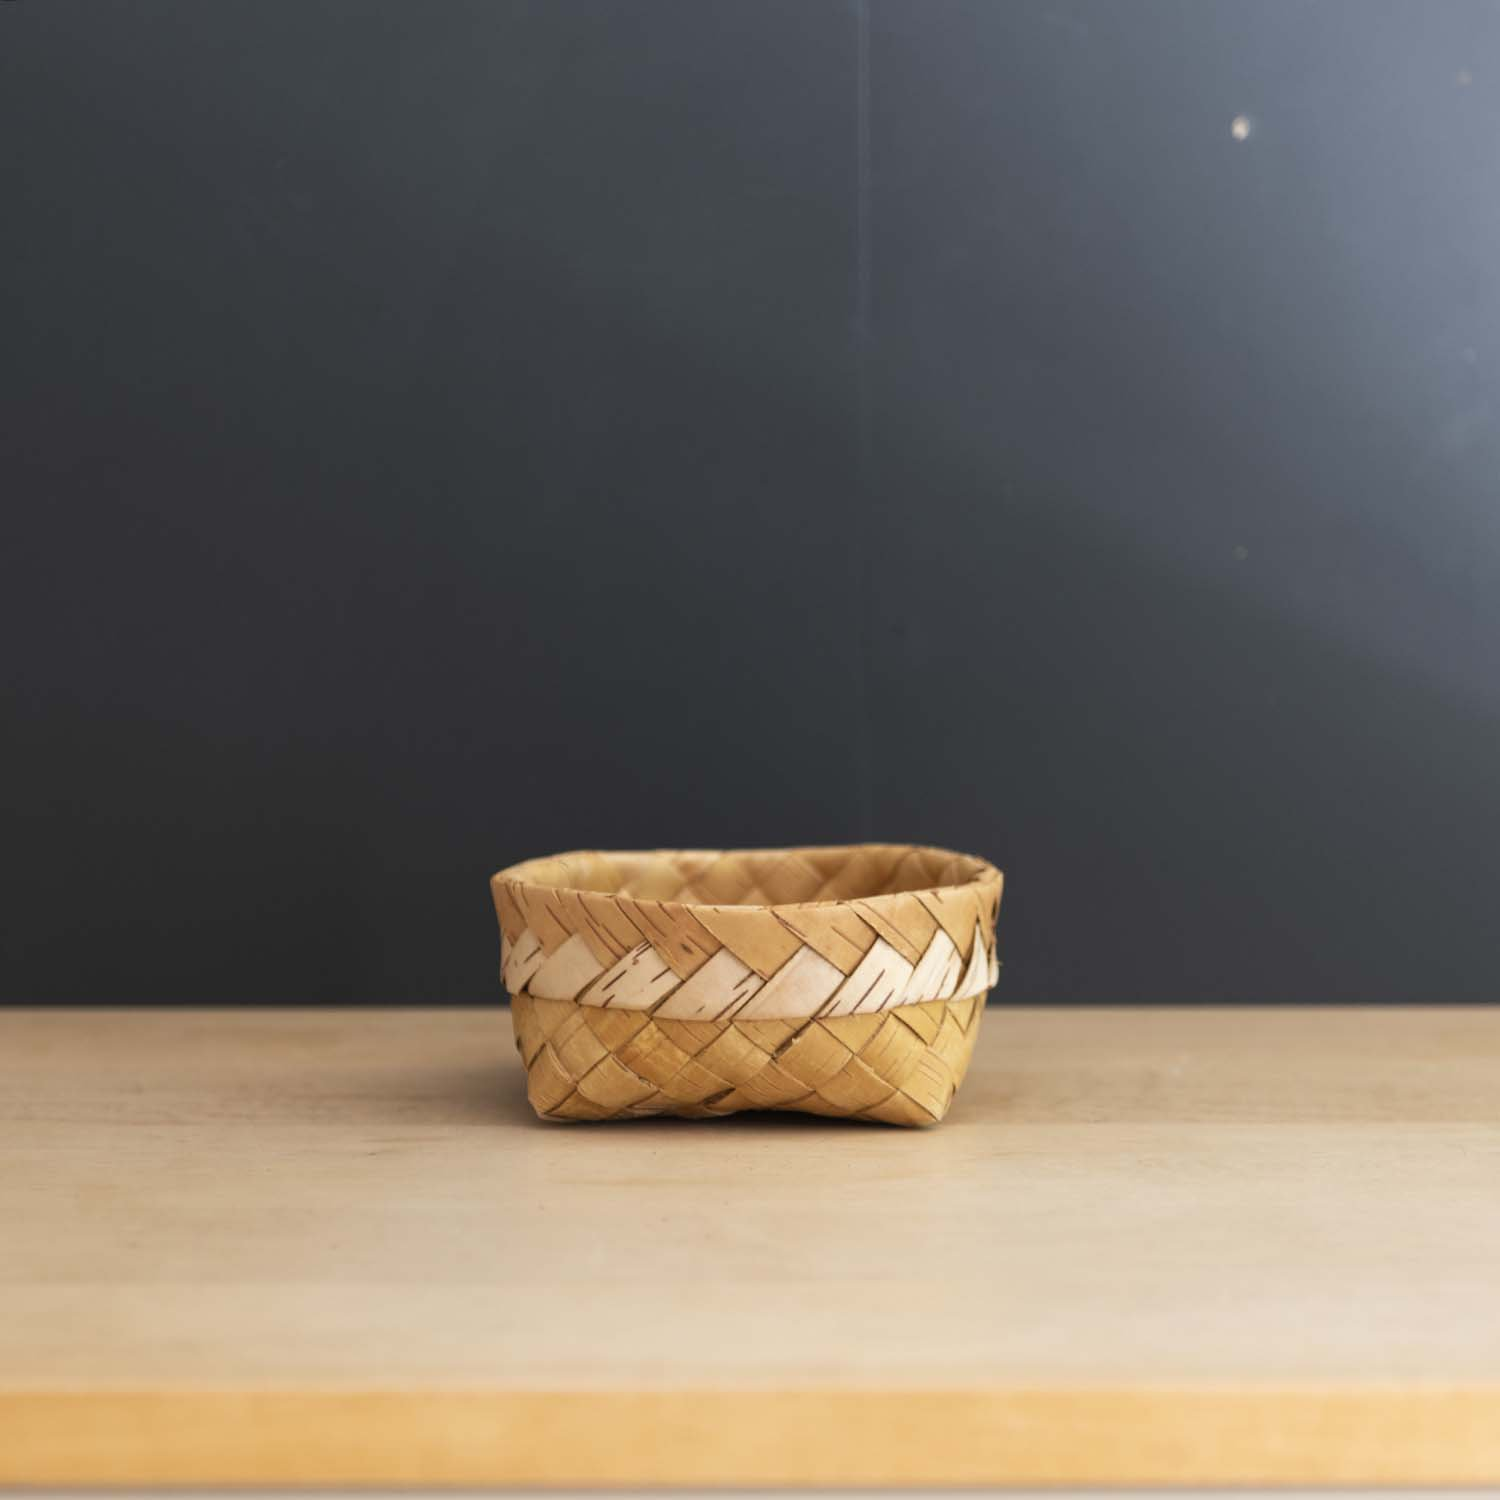 <img class='new_mark_img1' src='https://img.shop-pro.jp/img/new/icons3.gif' style='border:none;display:inline;margin:0px;padding:0px;width:auto;' />Birch Bark Handwoven Basket Small